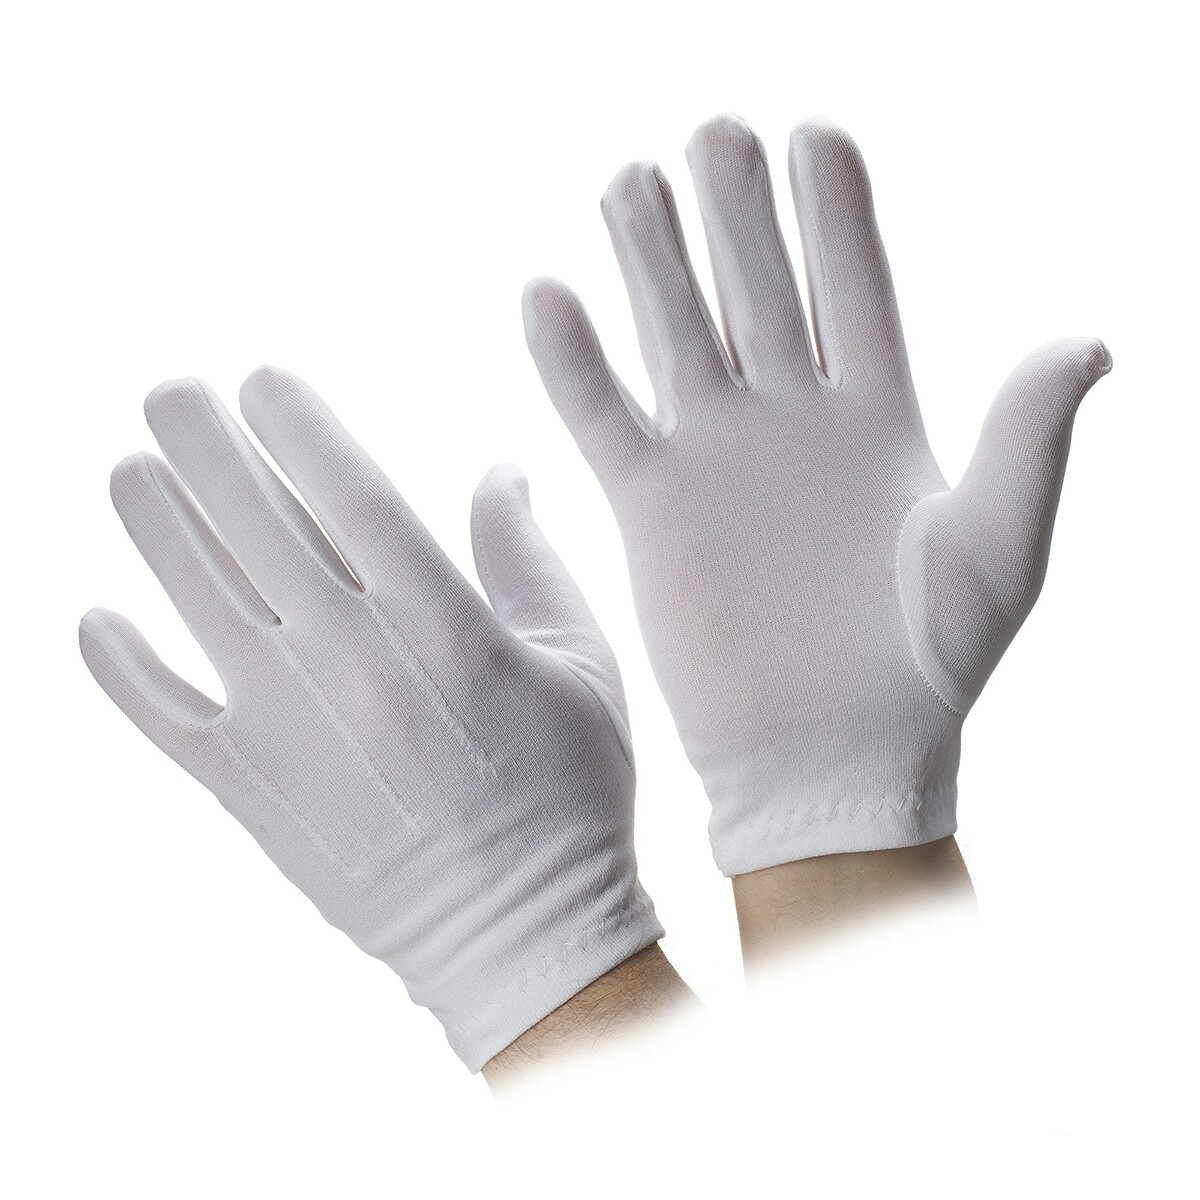 d9eb70cf71 Unisex Stretch Nylon Gloves | Parade Gloves | Gloves-Online